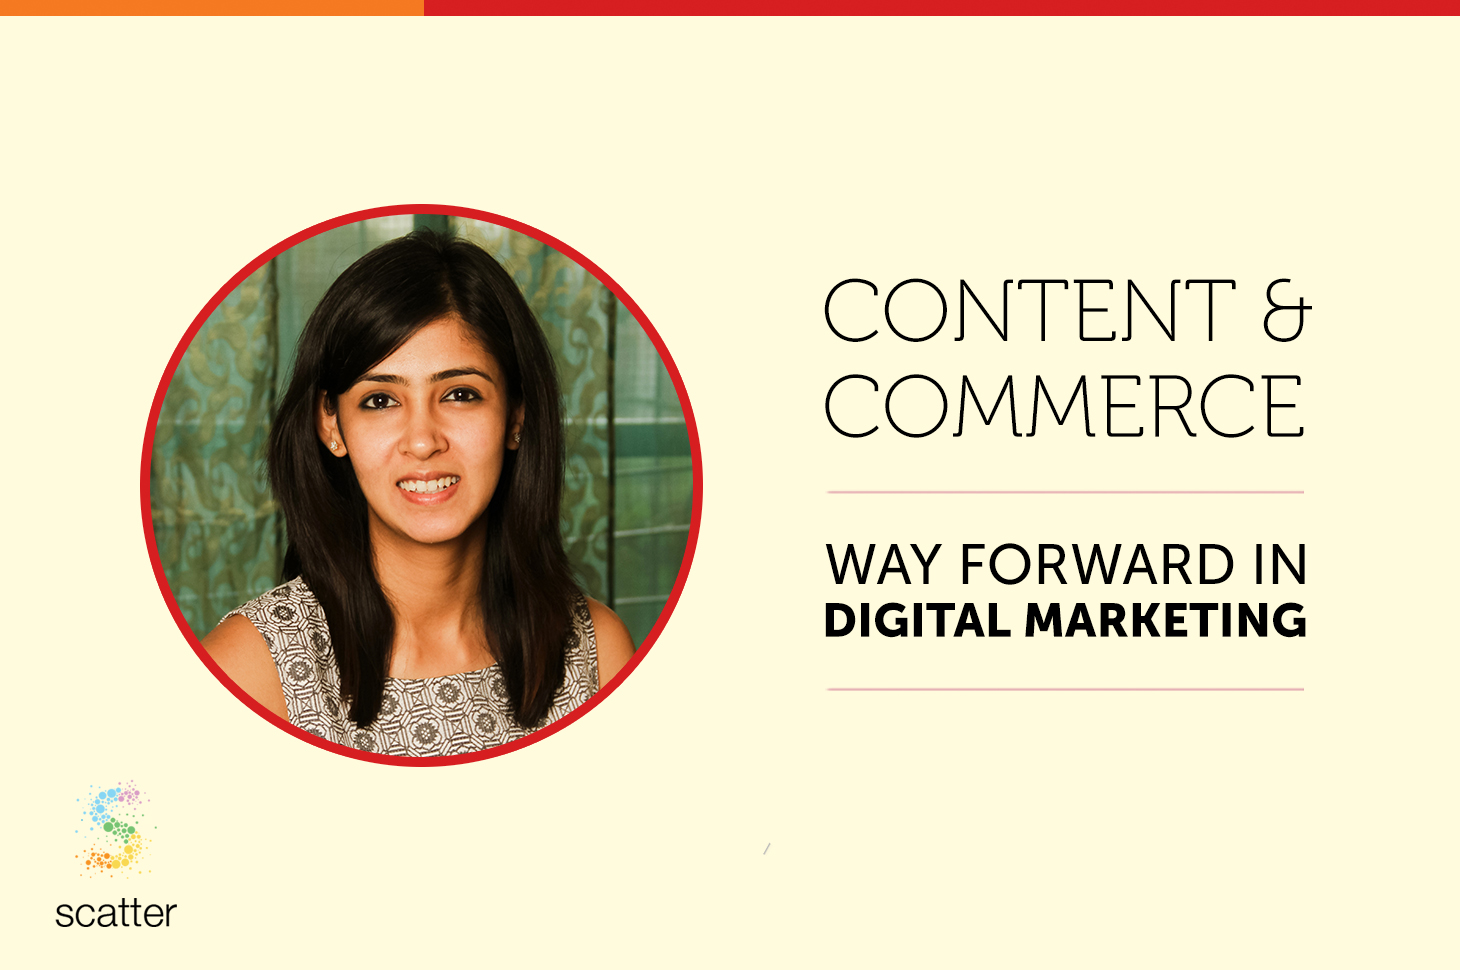 Content and Commerce : Way Forward for Digital Marketing